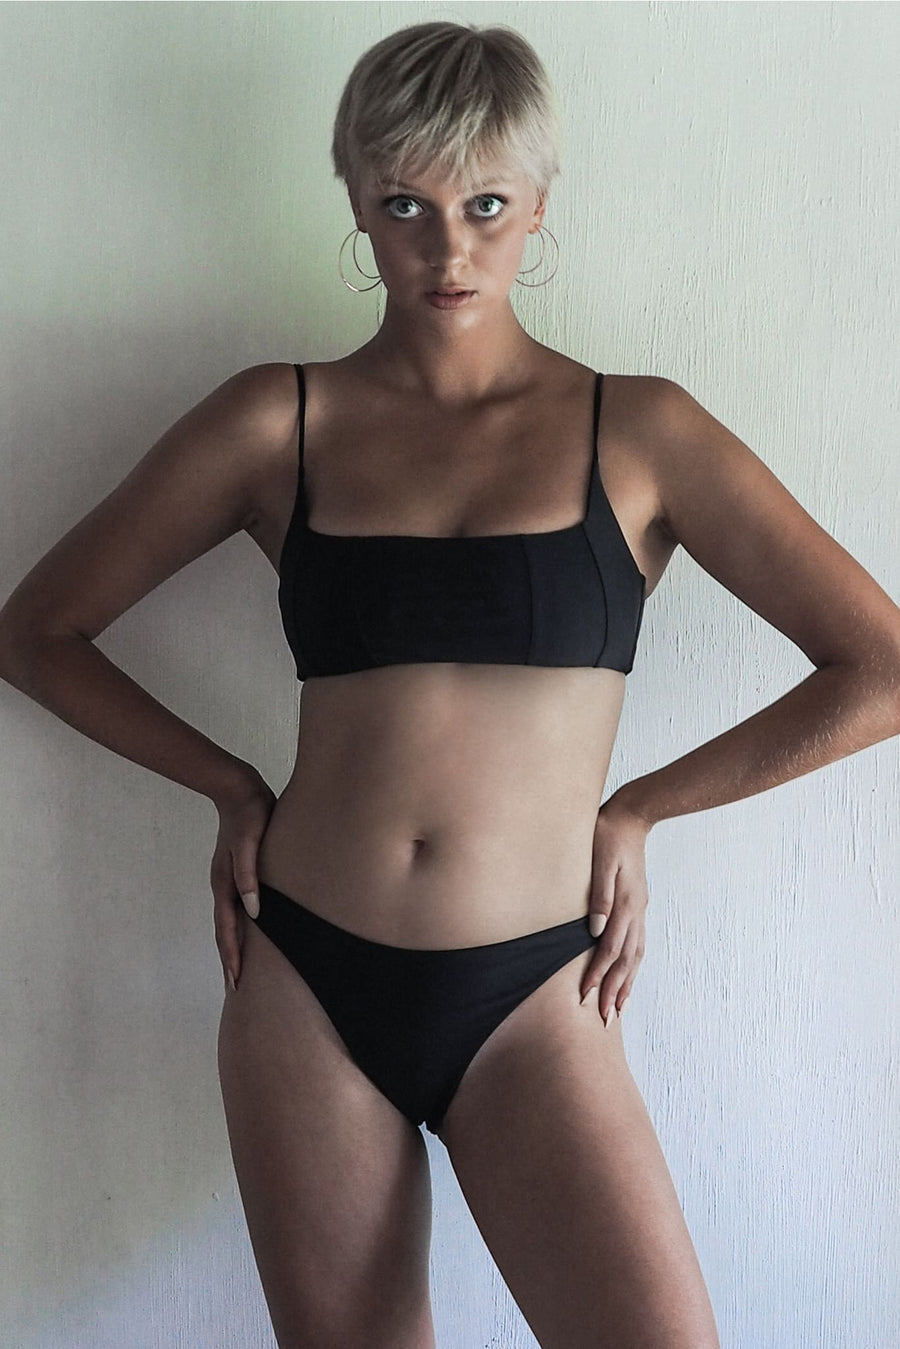 NANCY TOP | SEA BLACK - seamoneswimwear